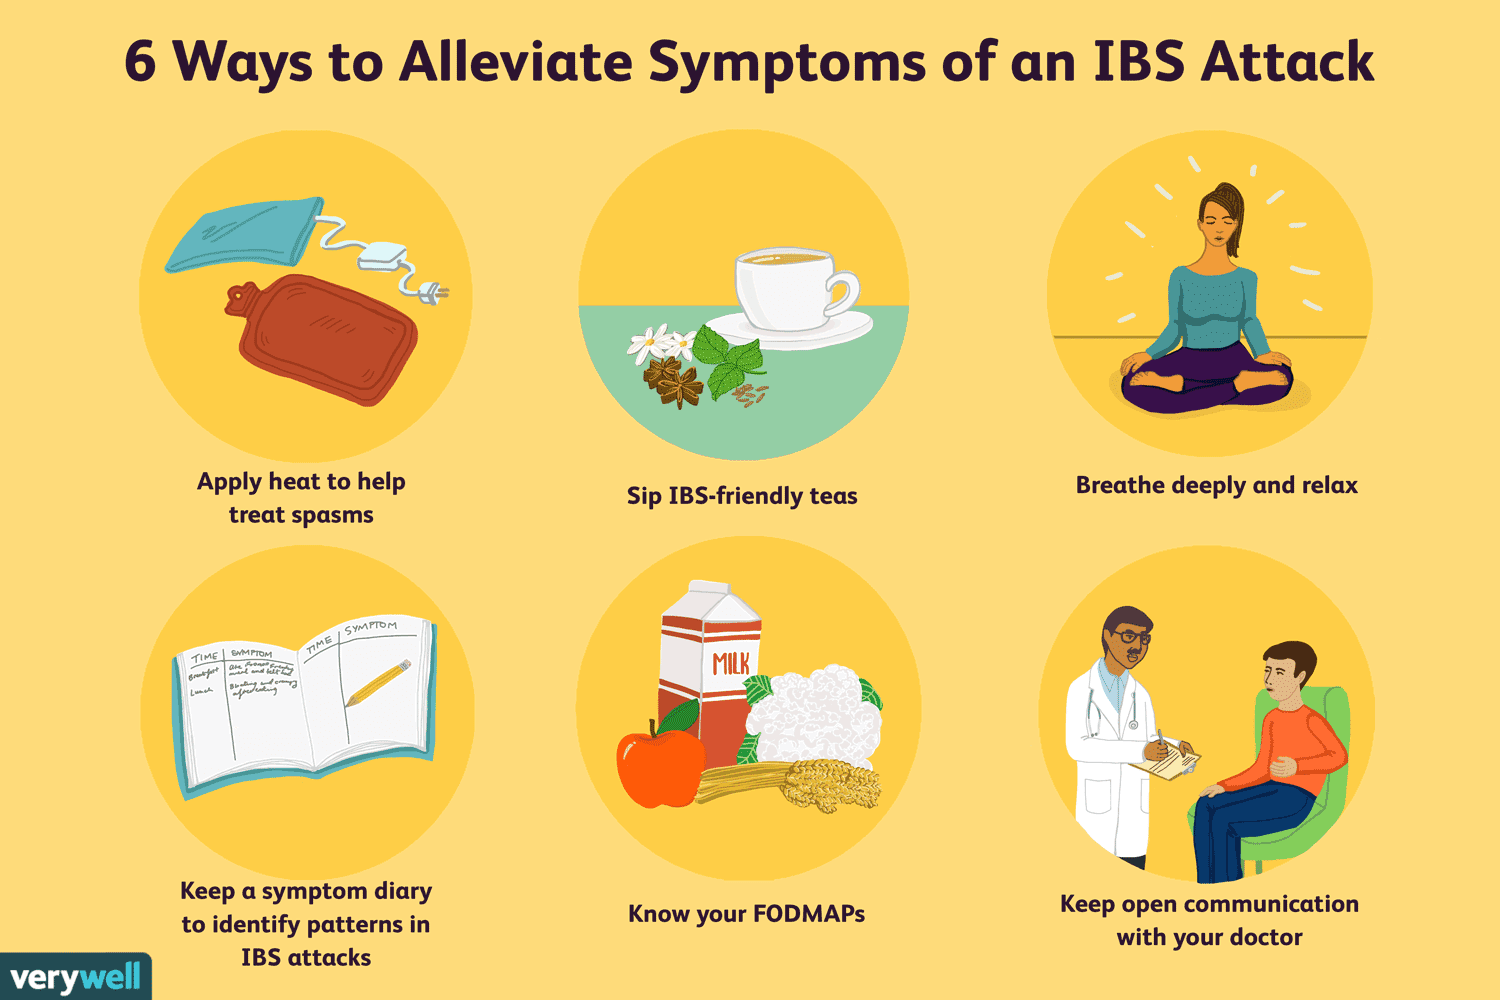 How to Deal With an IBS Attack